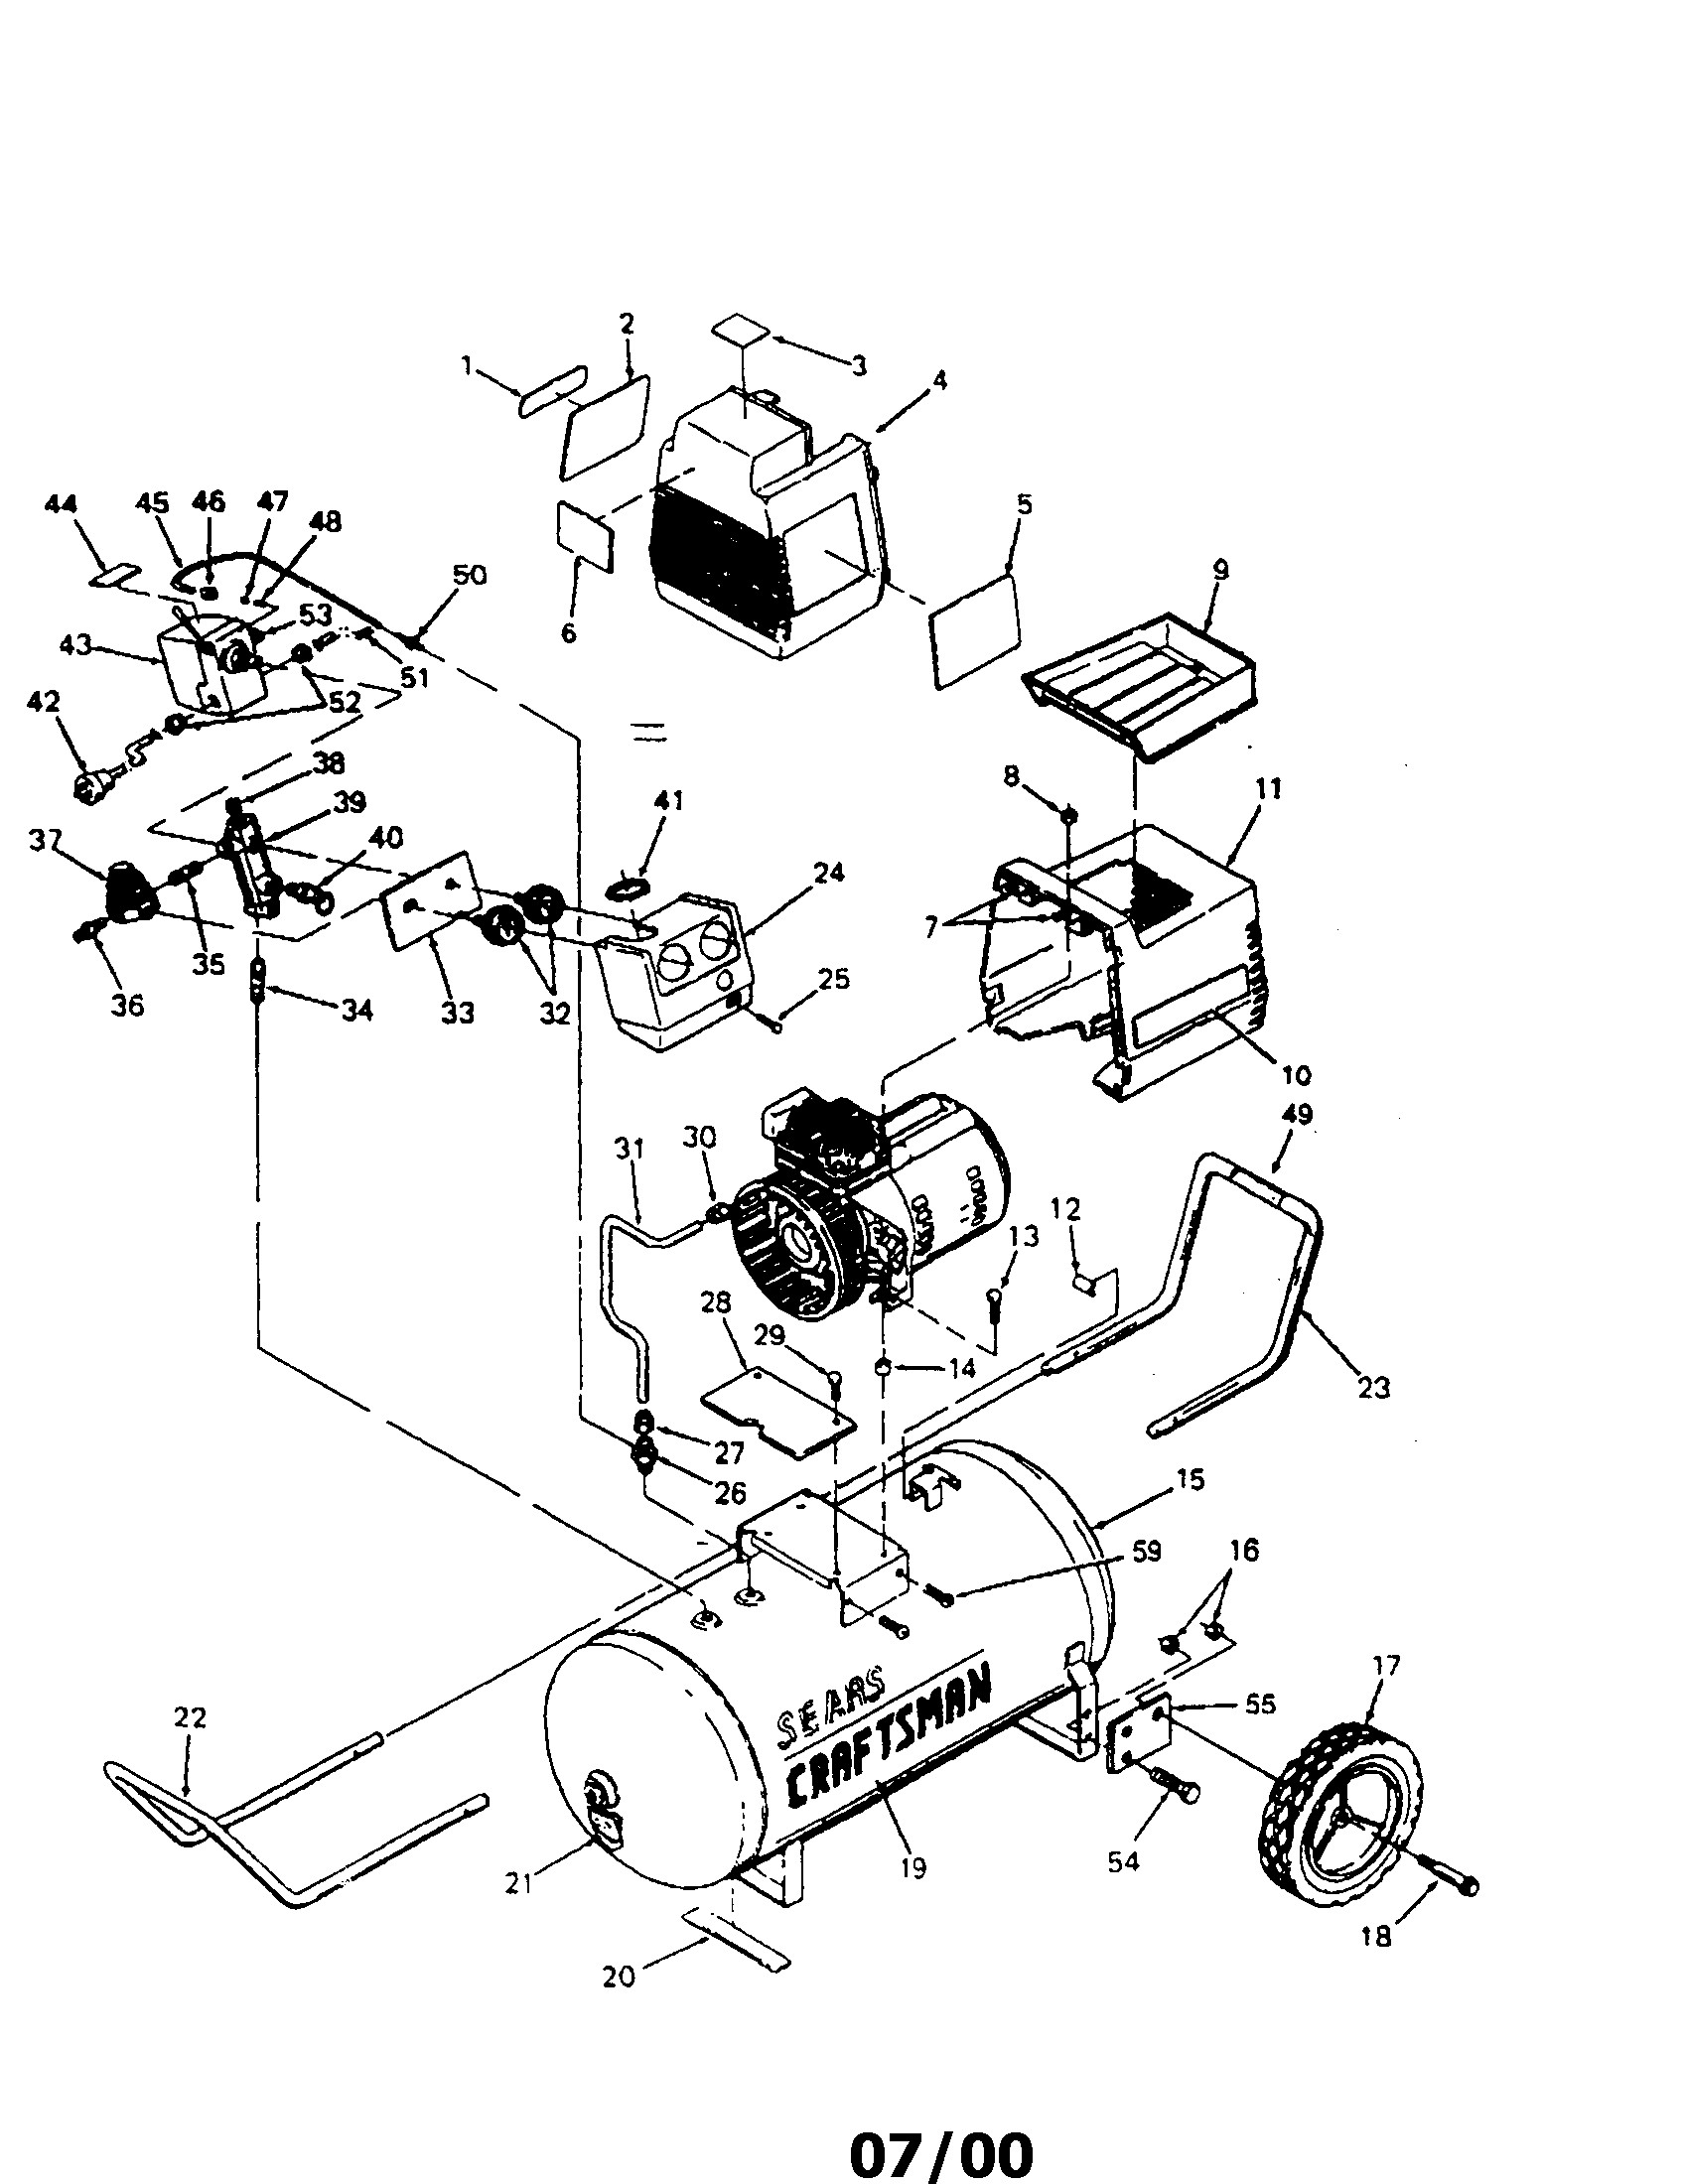 Craftsman Air Compressor Parts Diagram 919 Sears Craftsman Air Pressor Parts